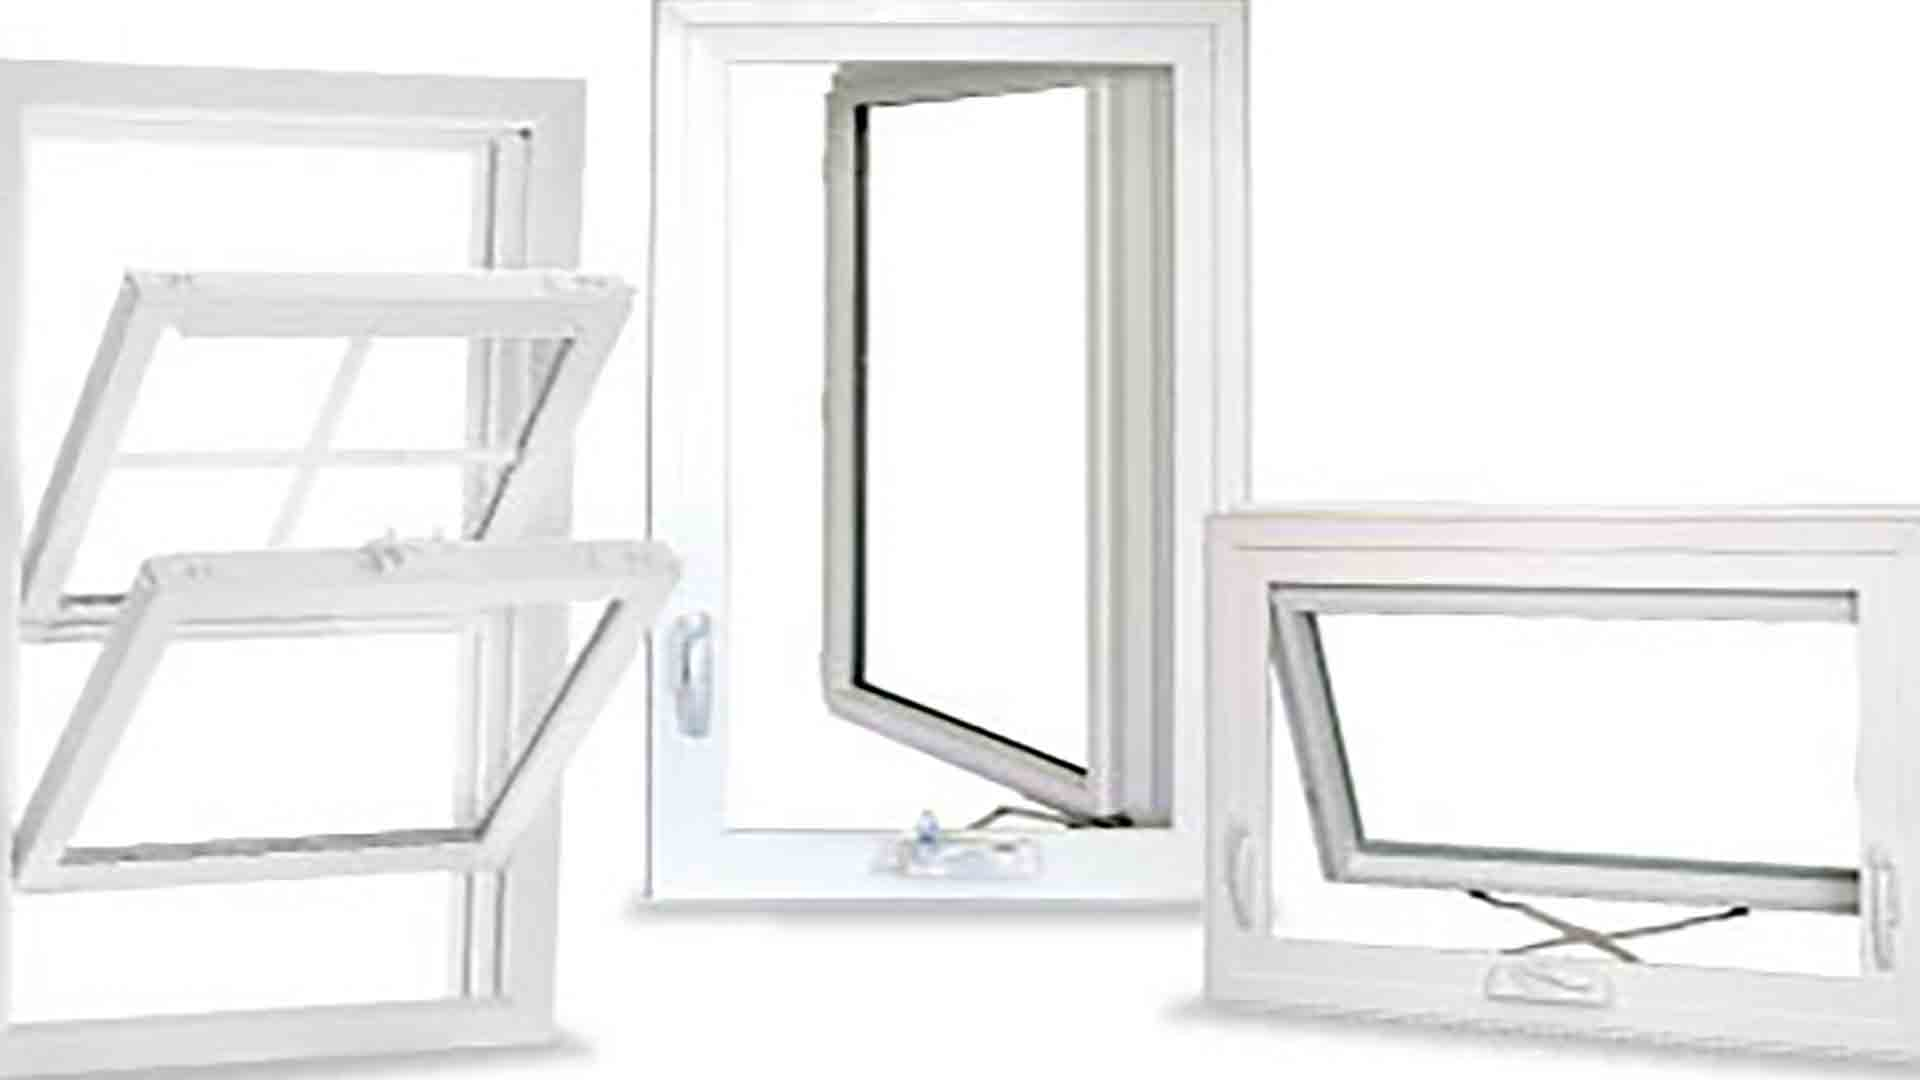 3 different window styles